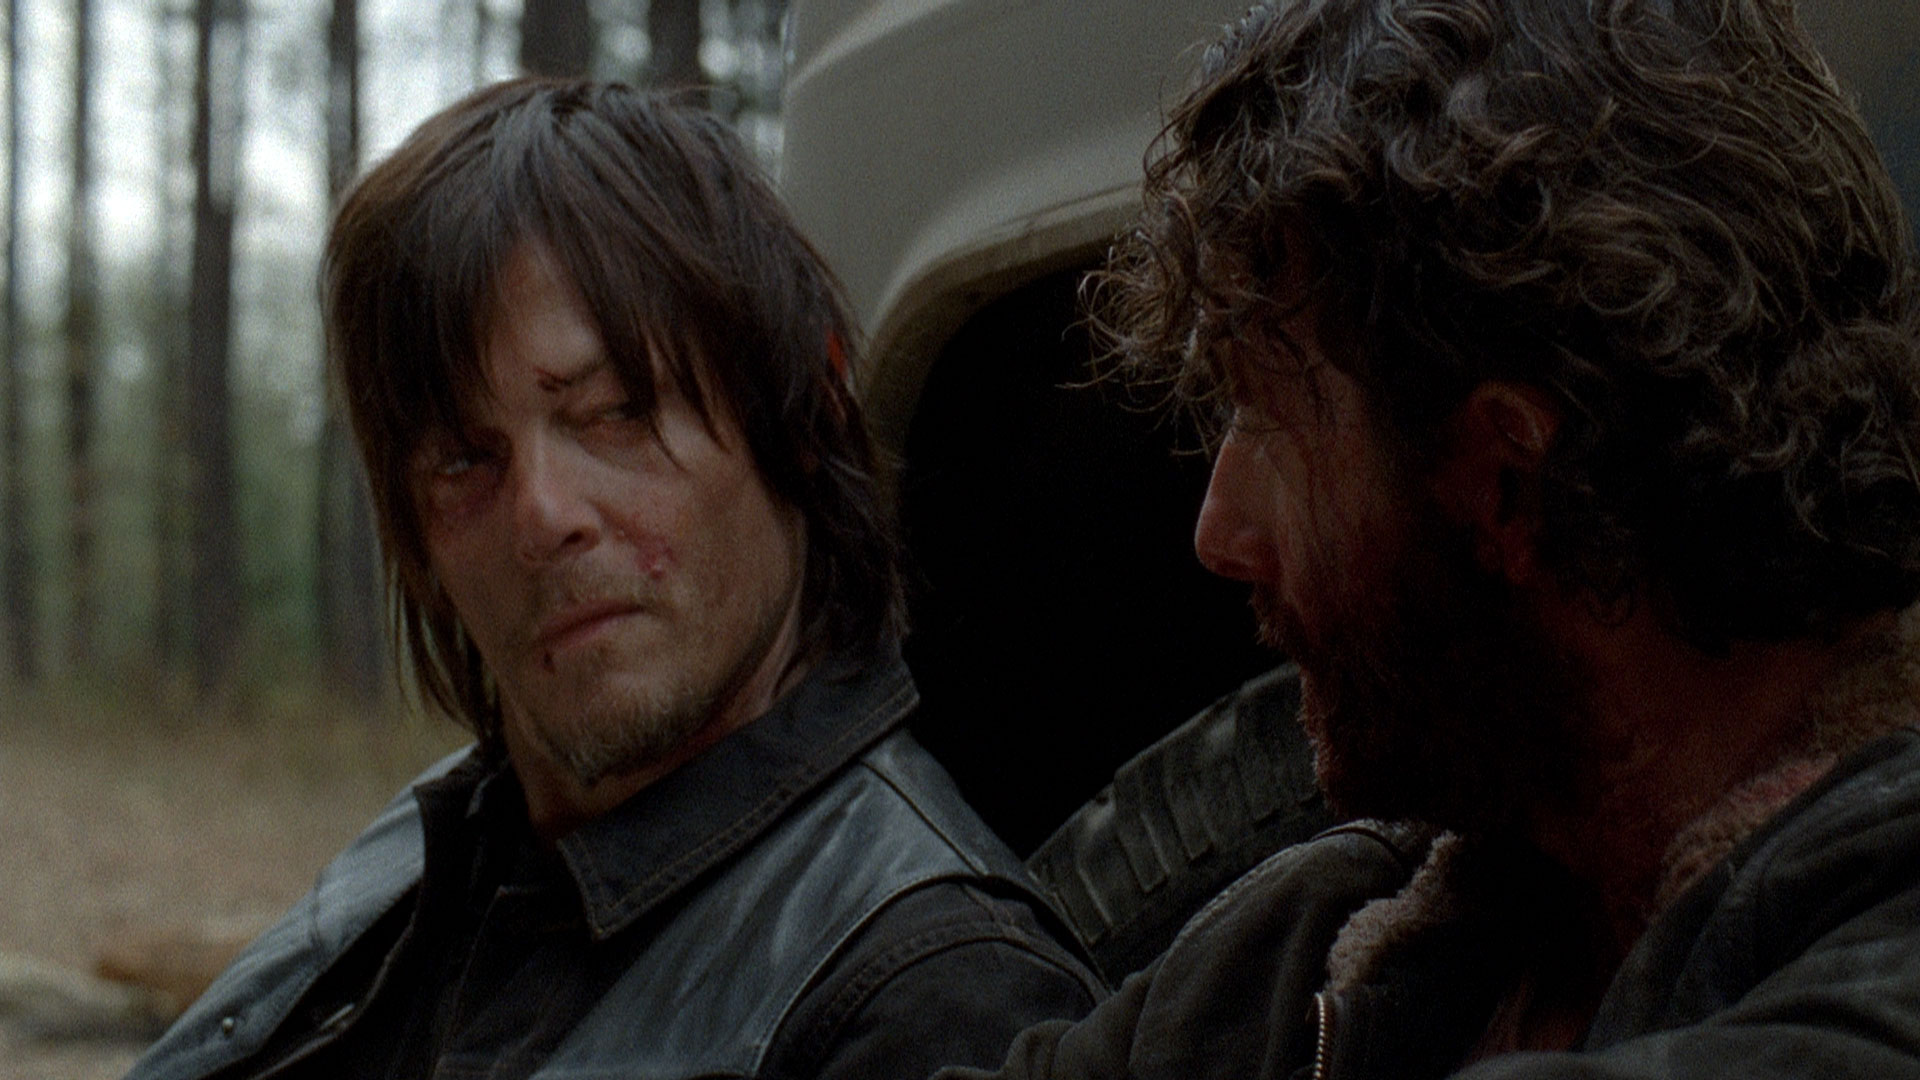 Ride With Norman Reedus will return for Season 3 on Sunday, February 10 at Midnight/11c. Full Seasons 1 and 2 available now for AMC Premiere subscribers.